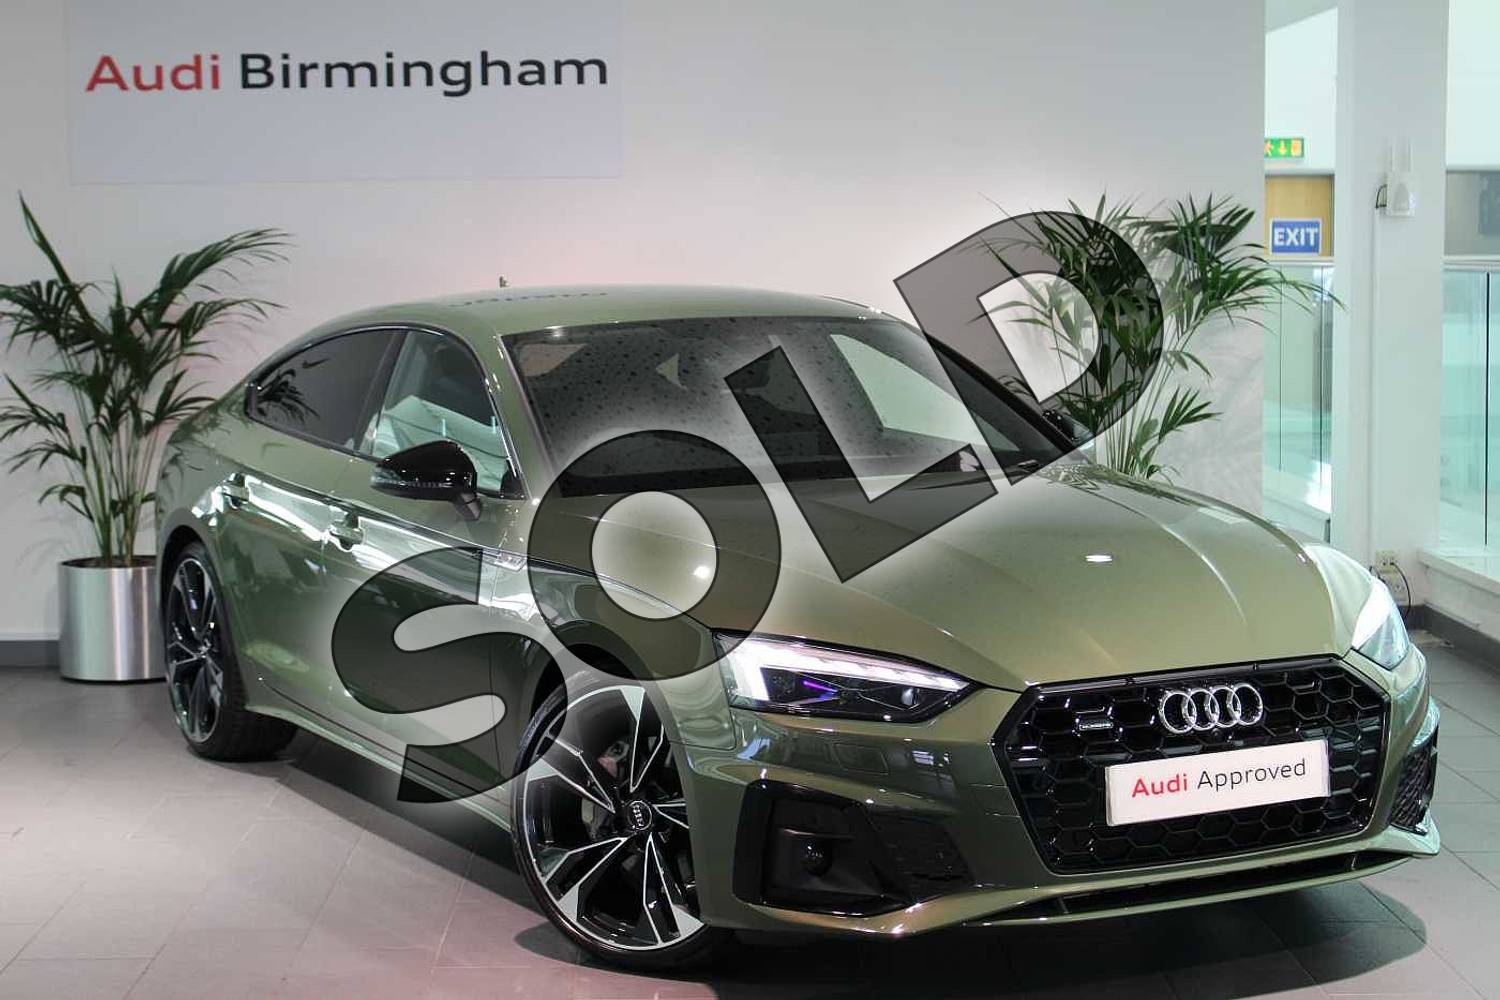 2020 Audi A5 Sportback Special Editions 40 TDI Quattro Edition 1 5dr S Tronic in District Green Metallic at Birmingham Audi